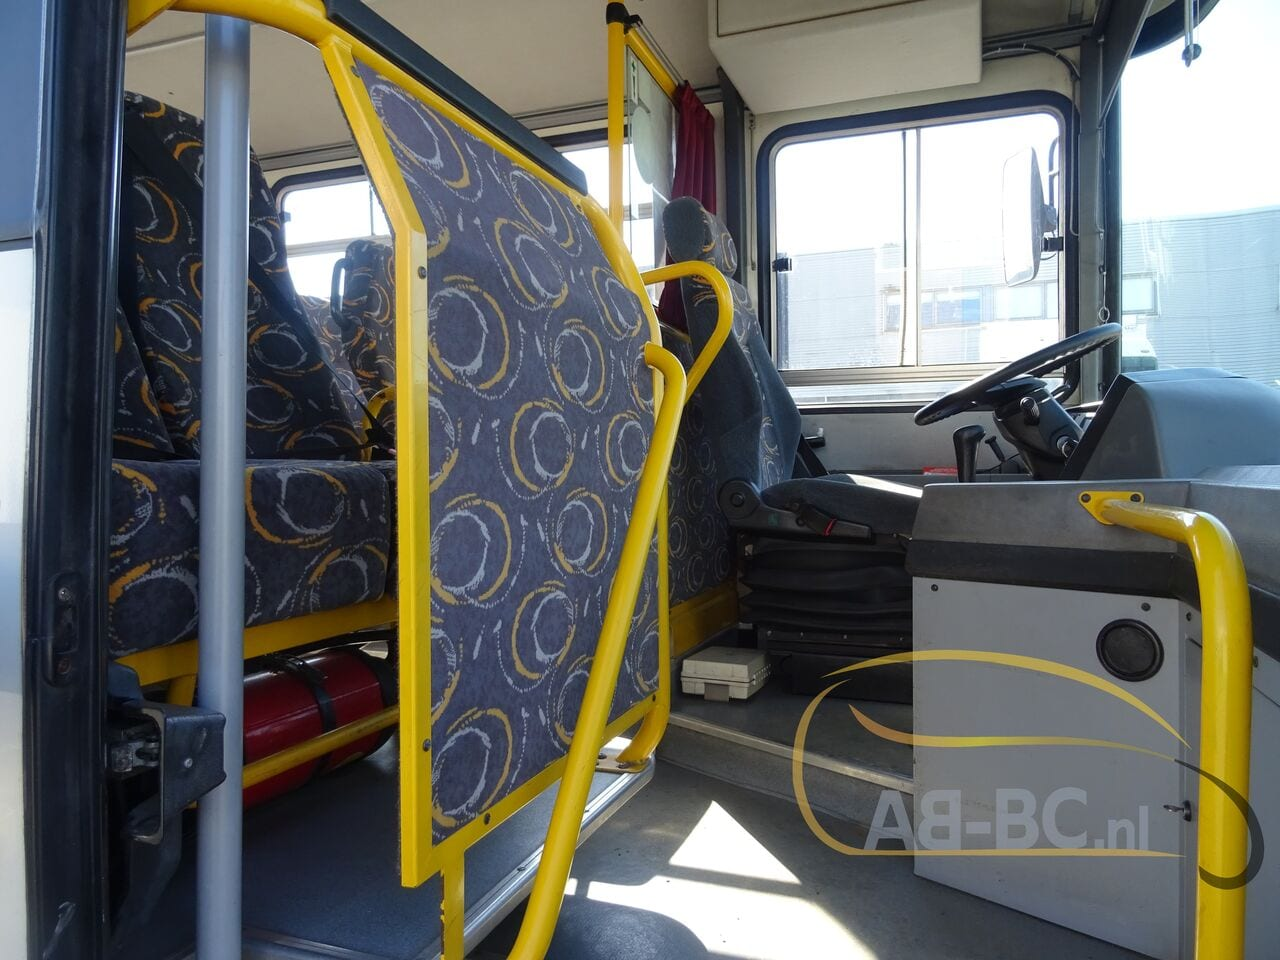 interurban-busIVECO-Irisbus-Recreo-59-Seats---1619430711488796300_big_38e4aa11355123ecb9d5b8a4b970643b--21042612454255740900